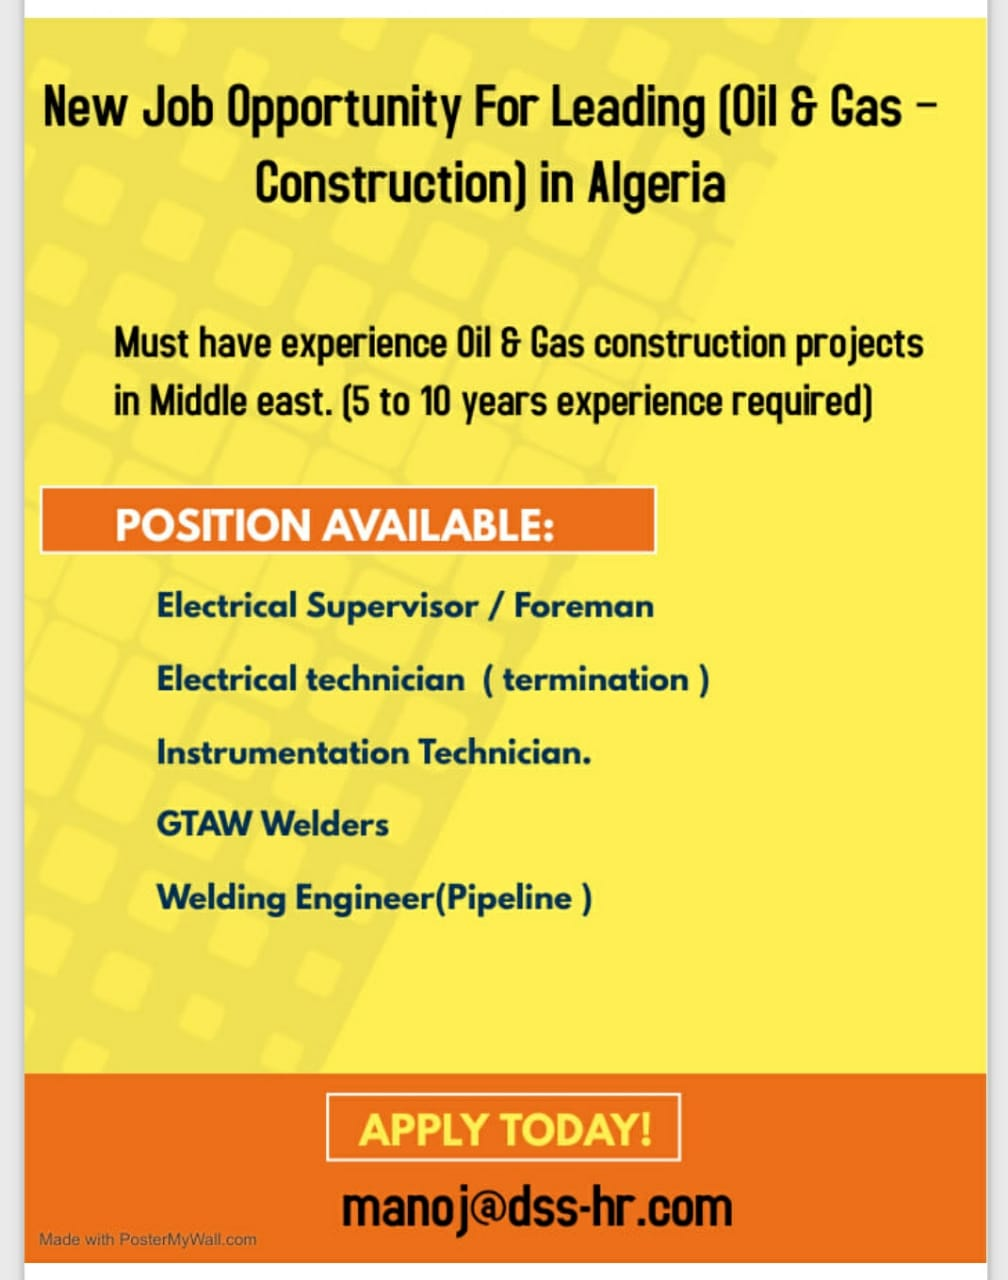 Job Opportunity For Leading (Oil & Gas – Construction) in Algeria